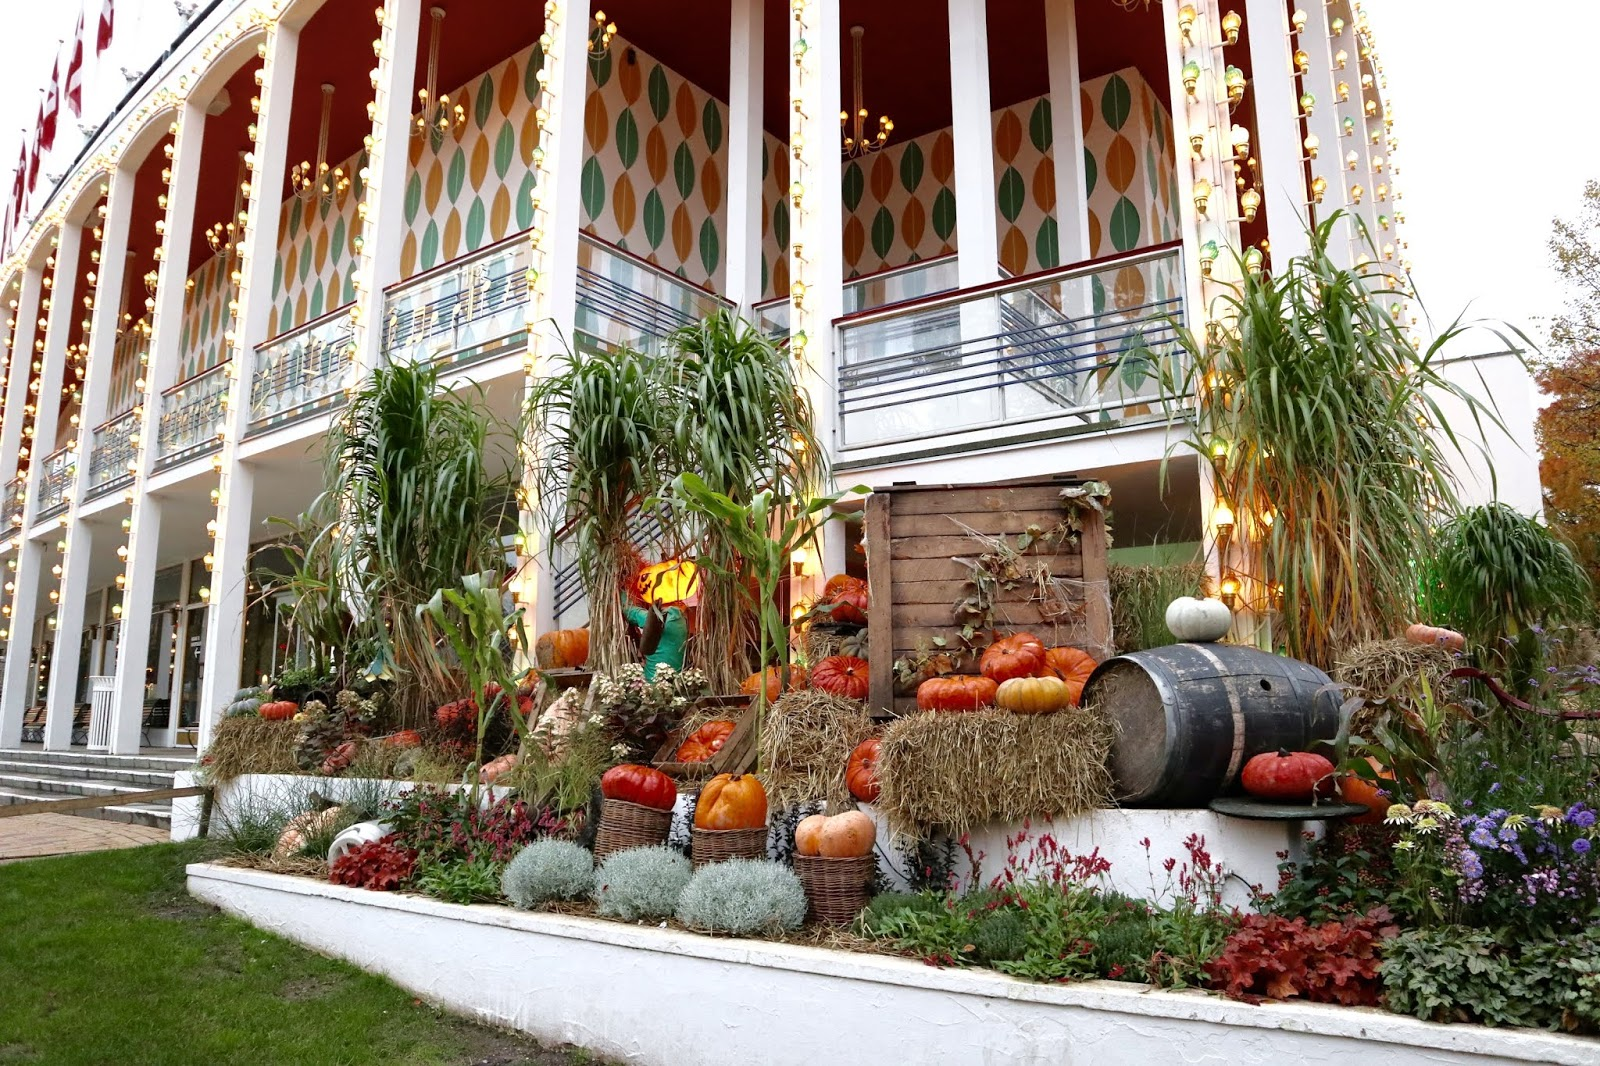 Halloween decorations at Tivoli Gardens